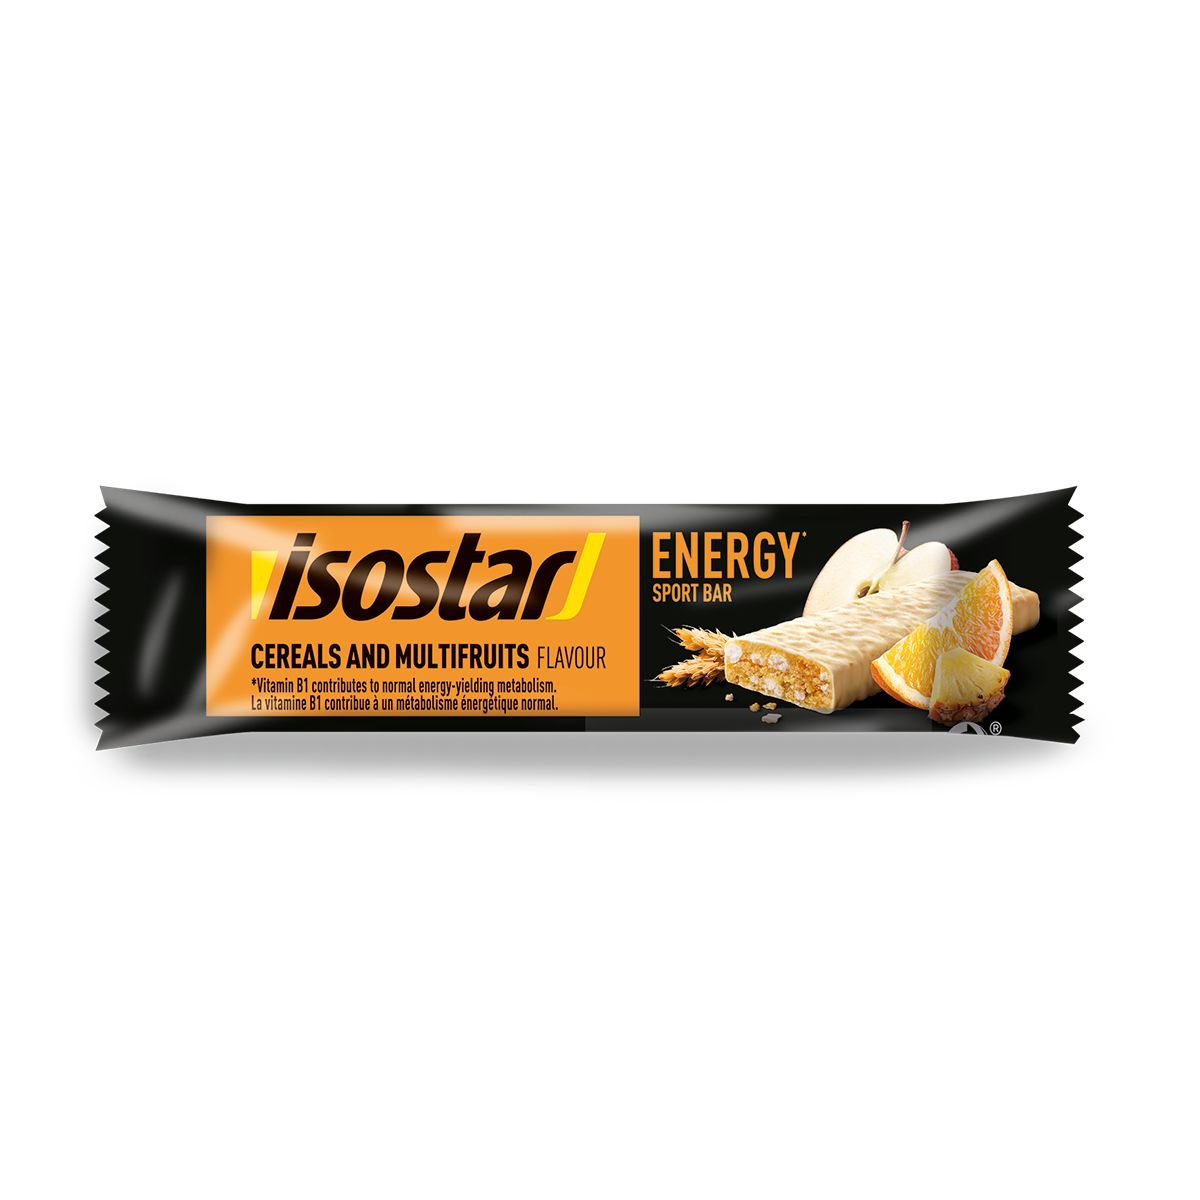 Isostar High Energy bar | Handlebars